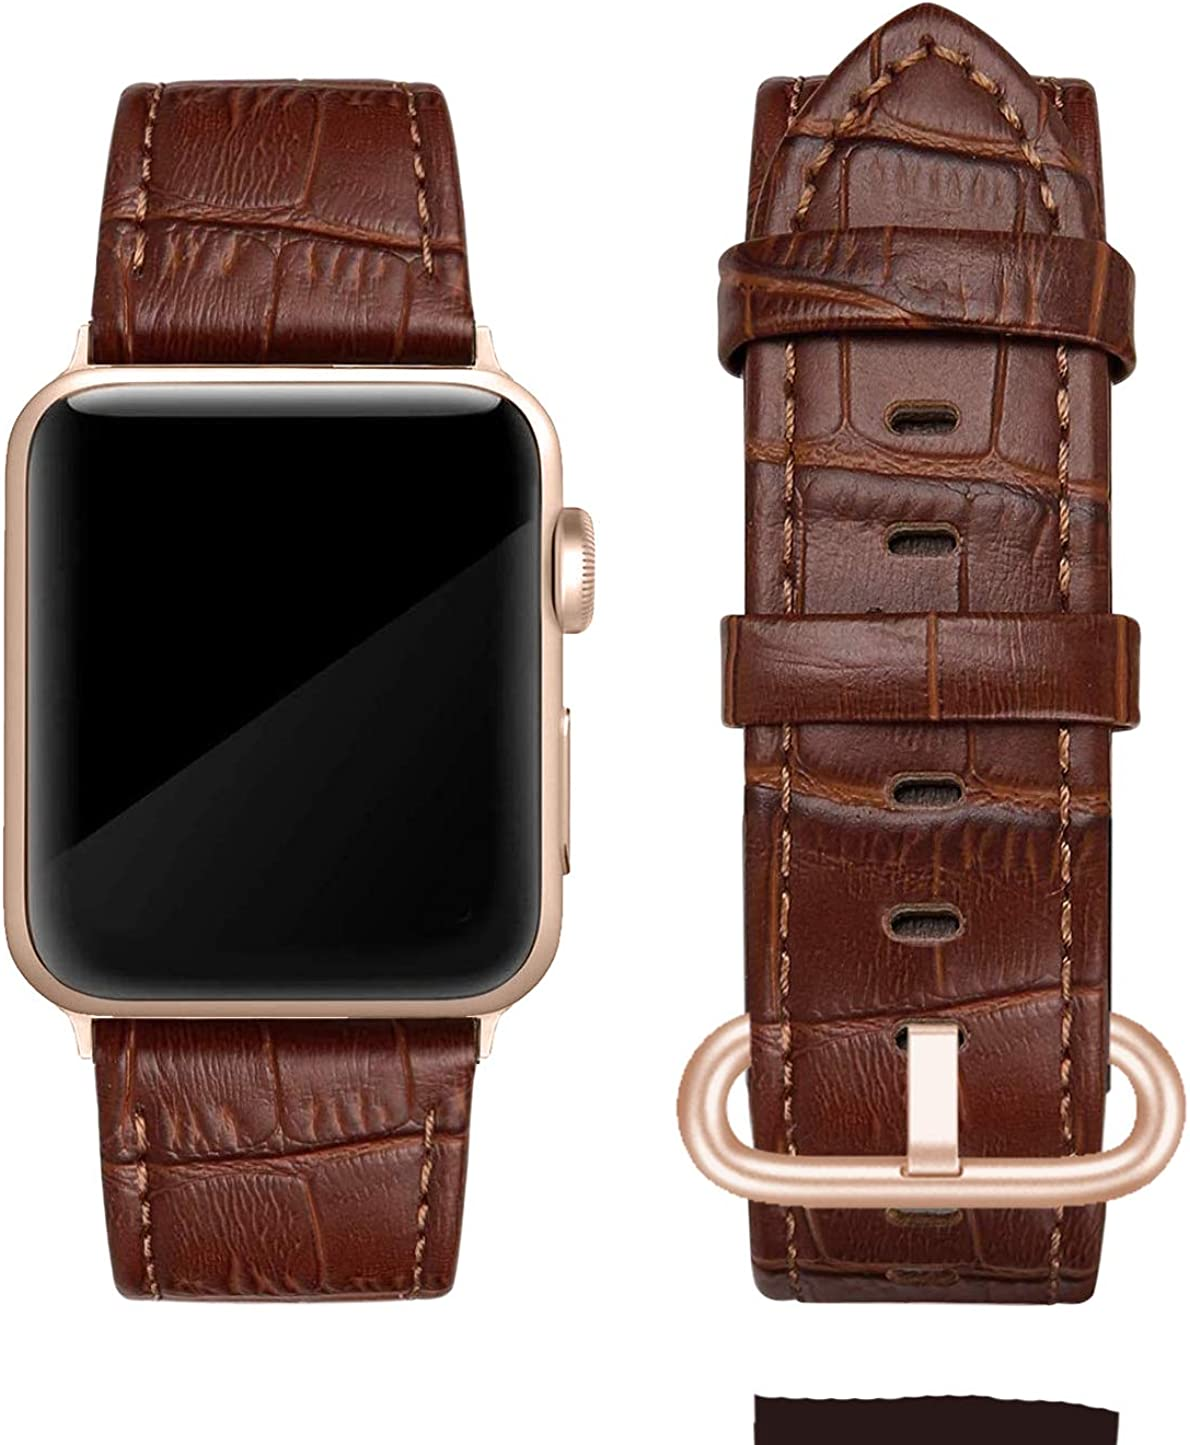 Genuine Leather Band Compatible with Apple Watch 38mm 40mm, Genuine Leather Replacement, Compatible with Series 5/4/3/2/1, Alligator, Rose Gold Buckle